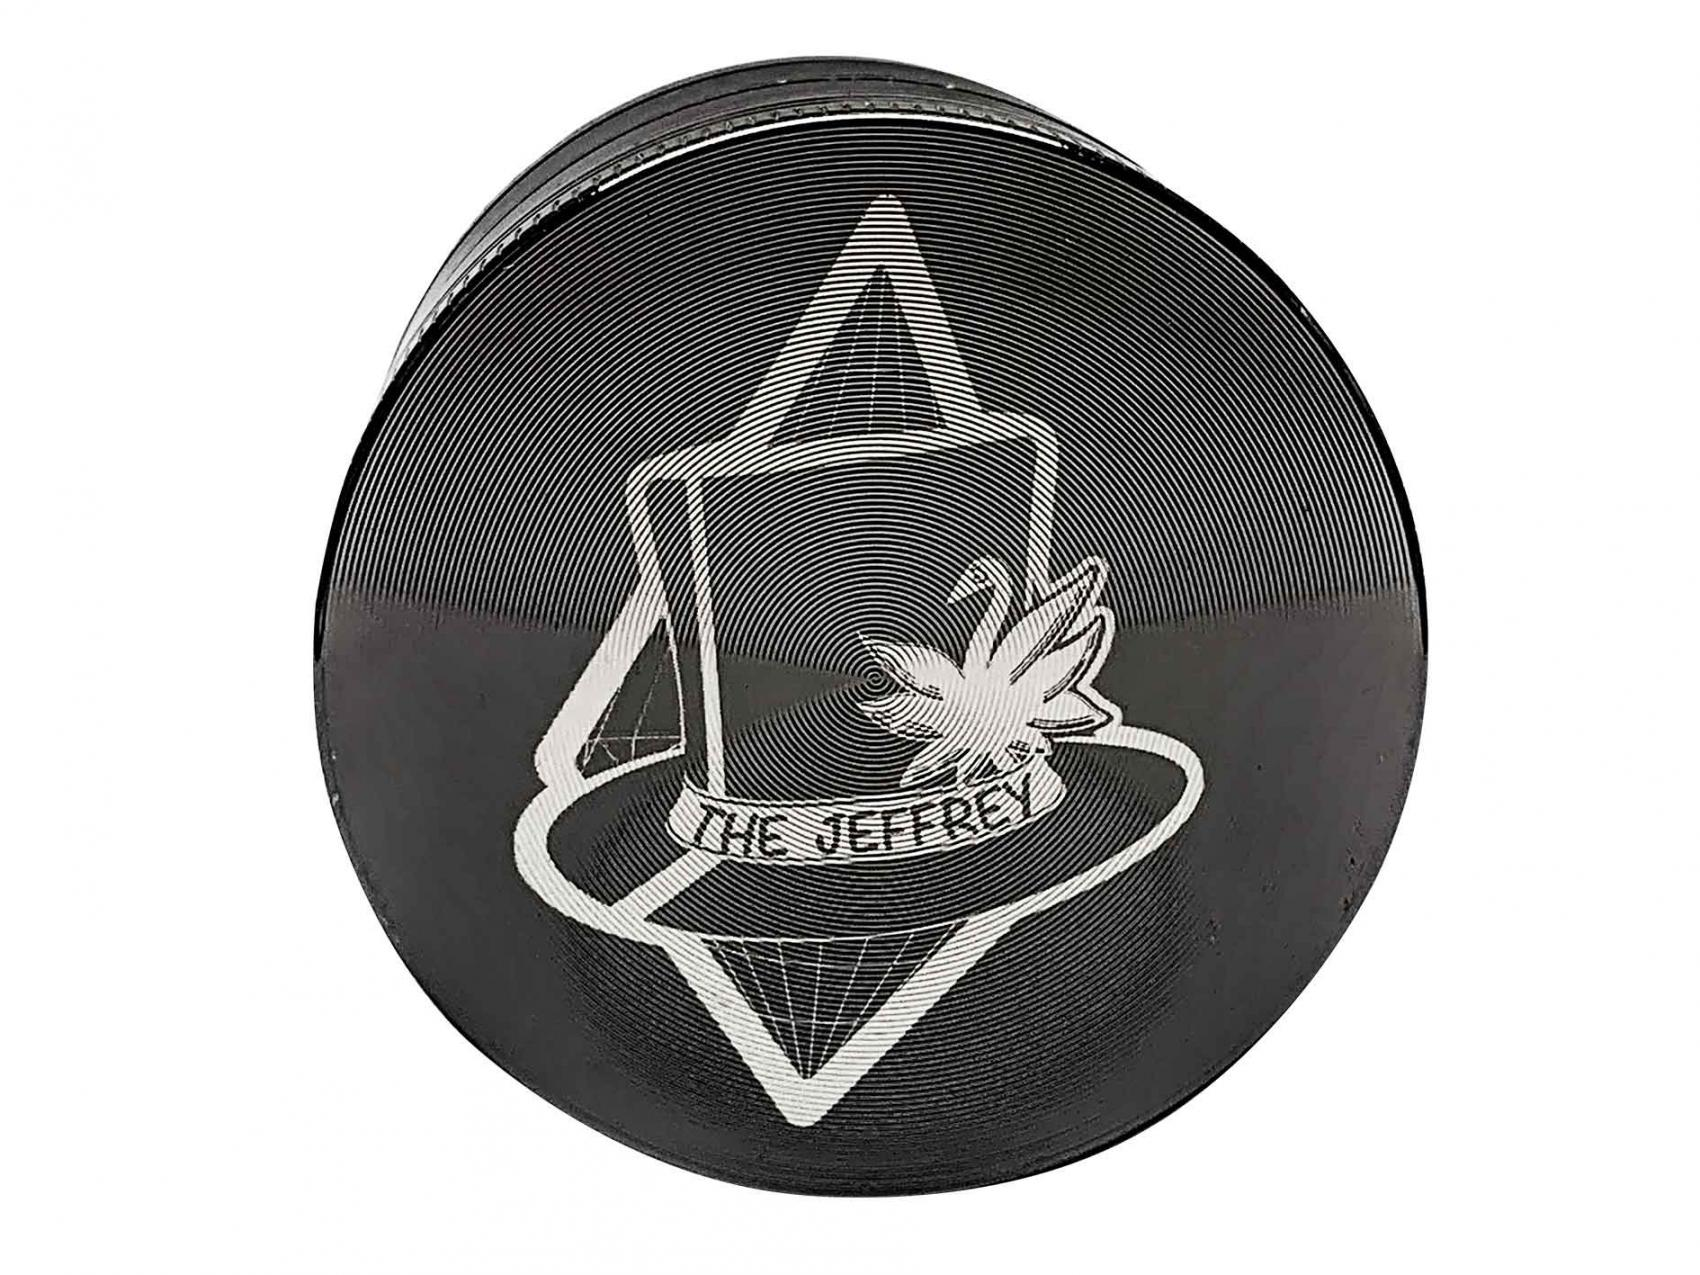 THE JEFFREY Metal Grinder 4-tlg. grey